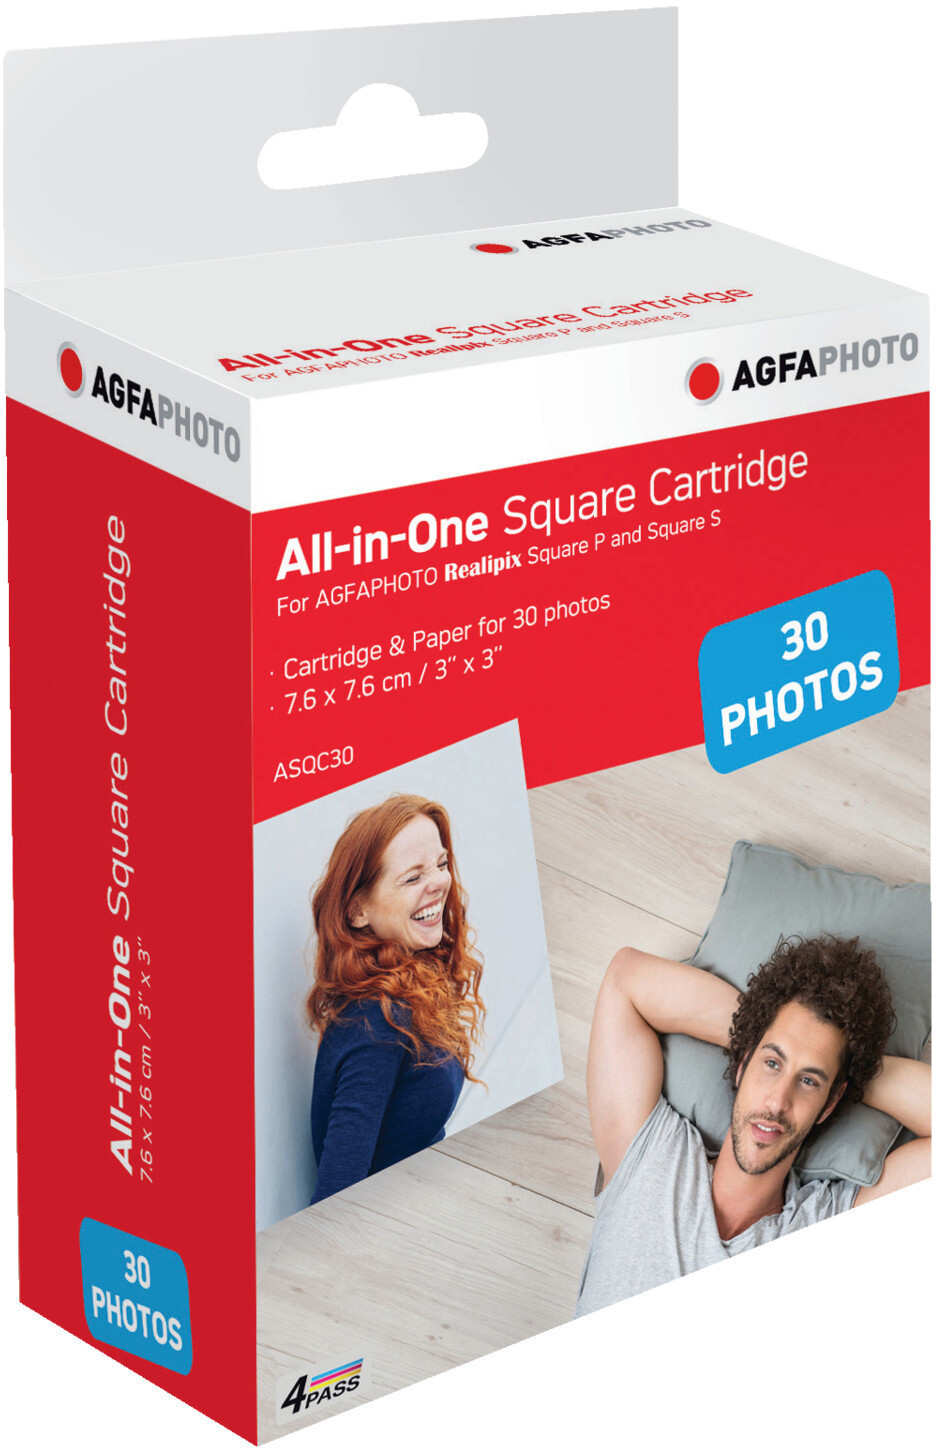 Image of AgfaPhoto All-in-One Square Cartridge (ASQC30)